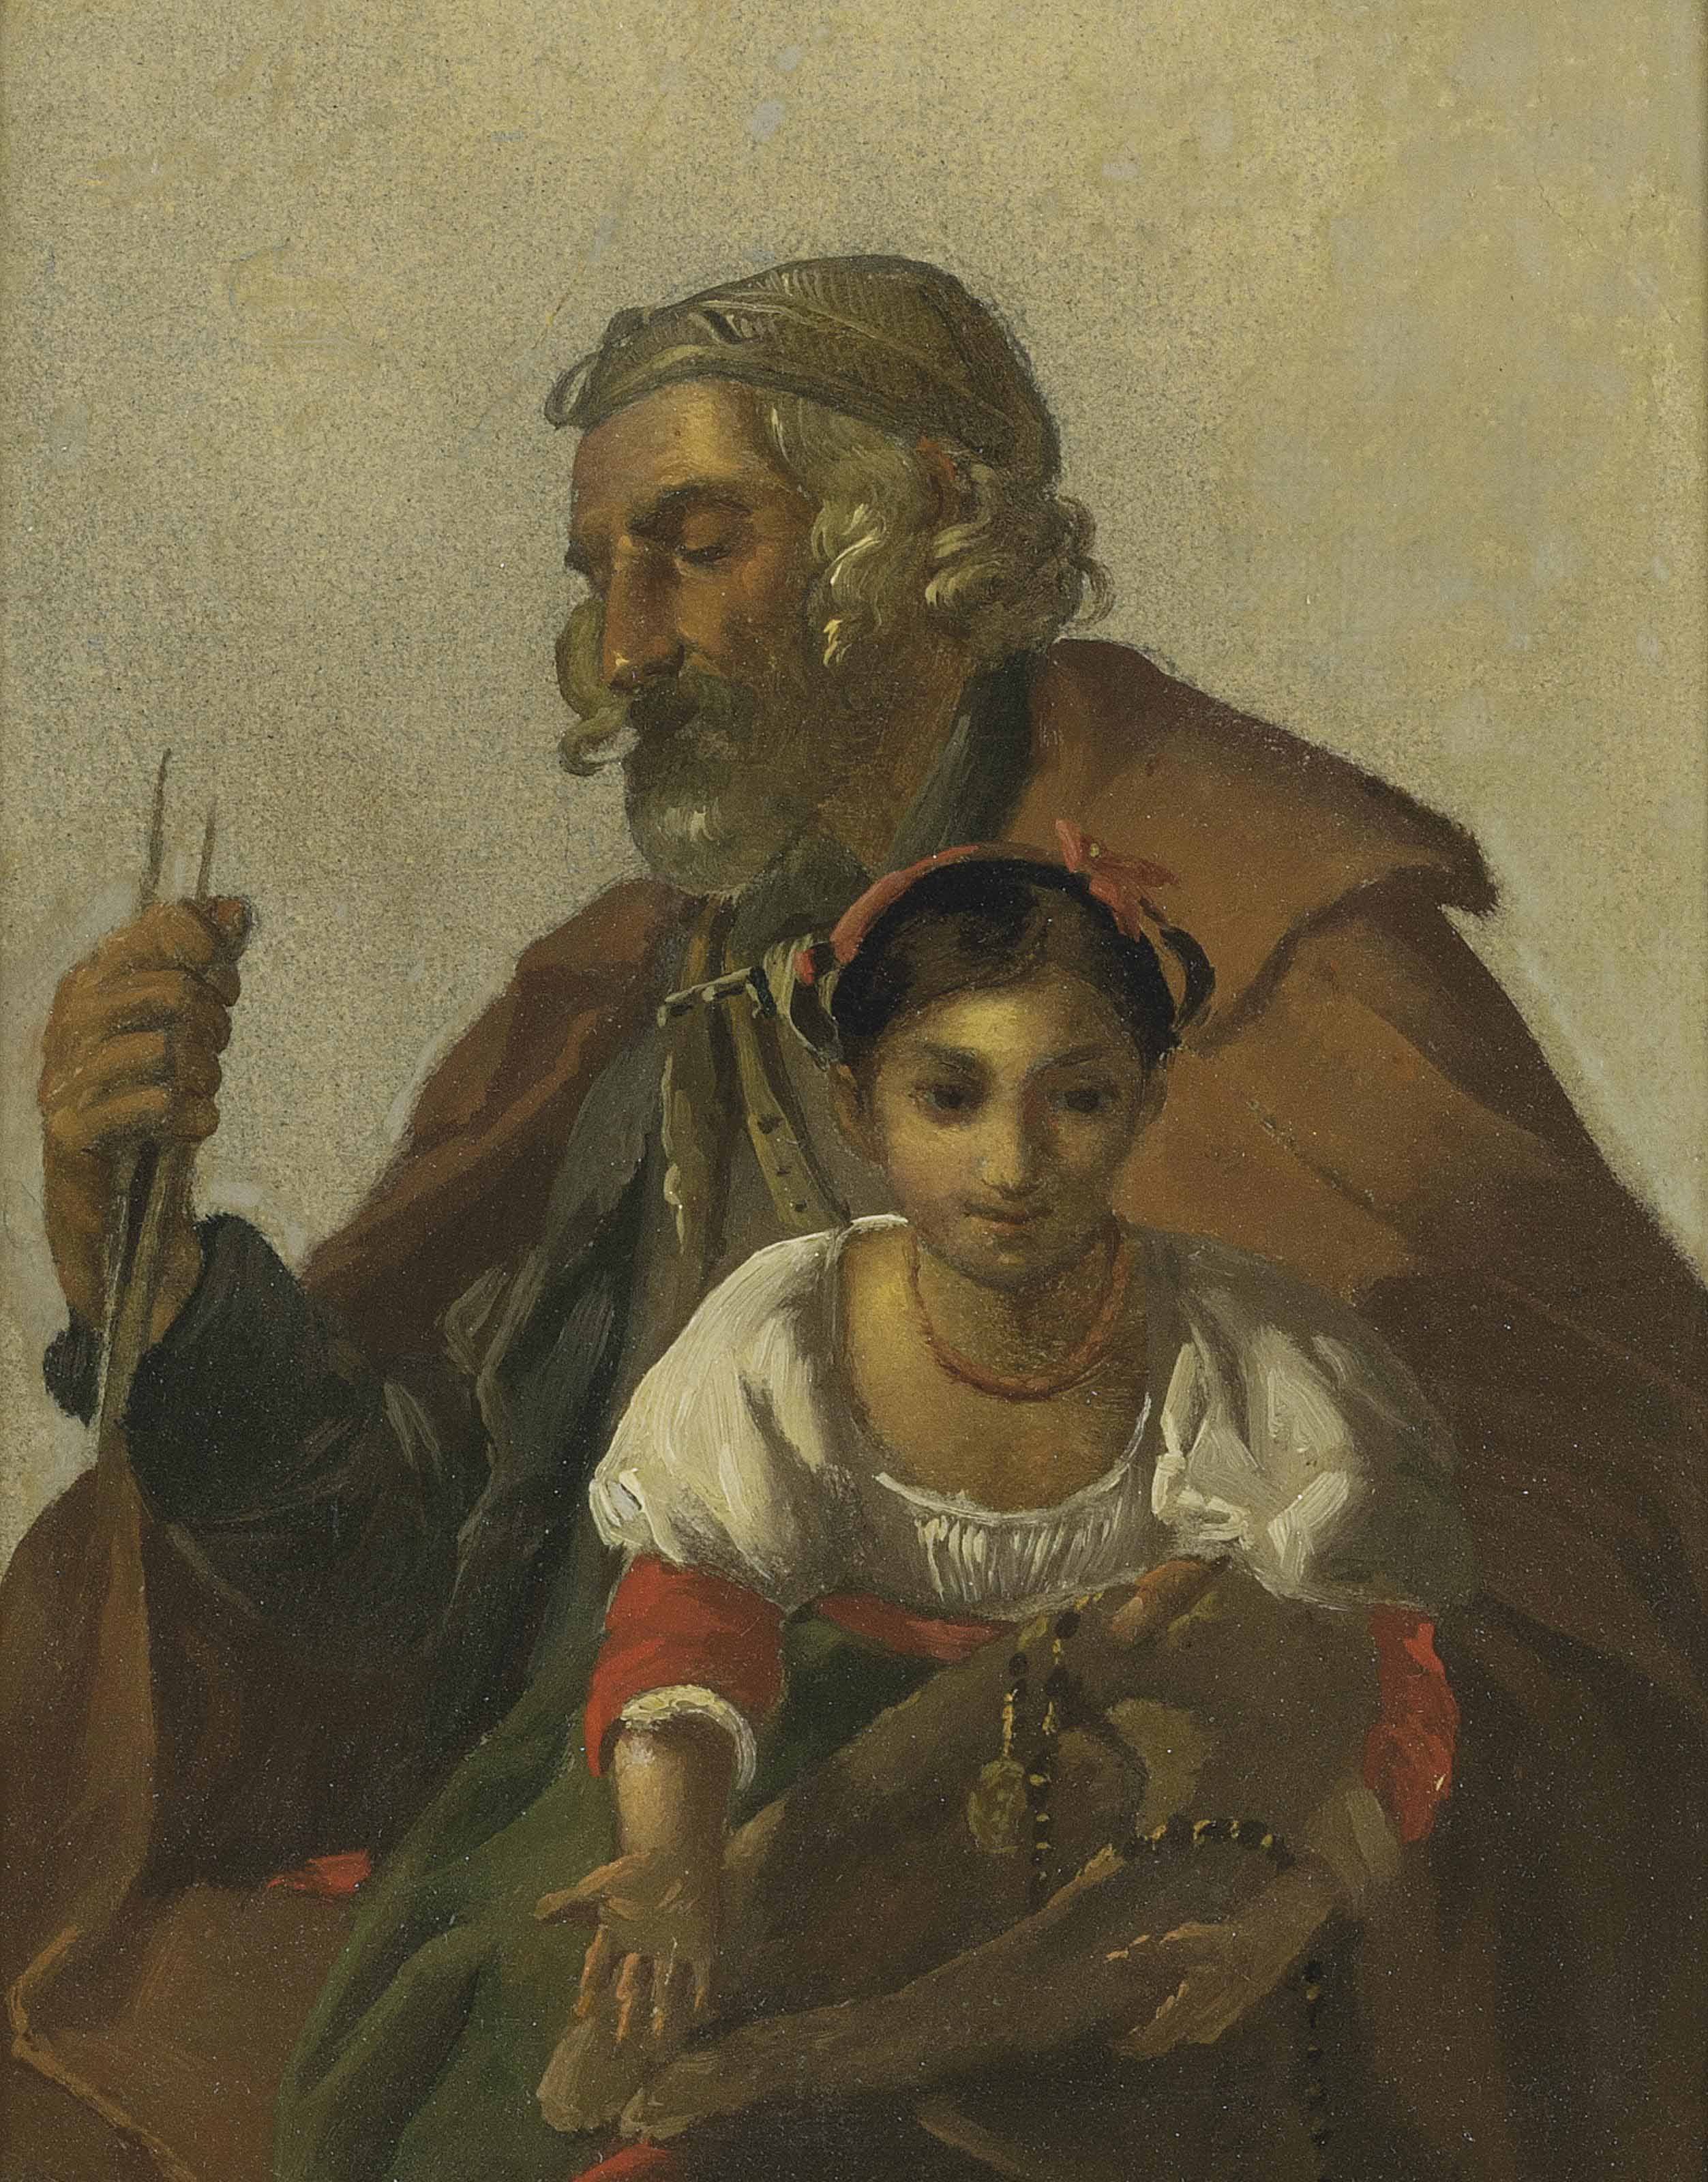 A shepherd watching over a child